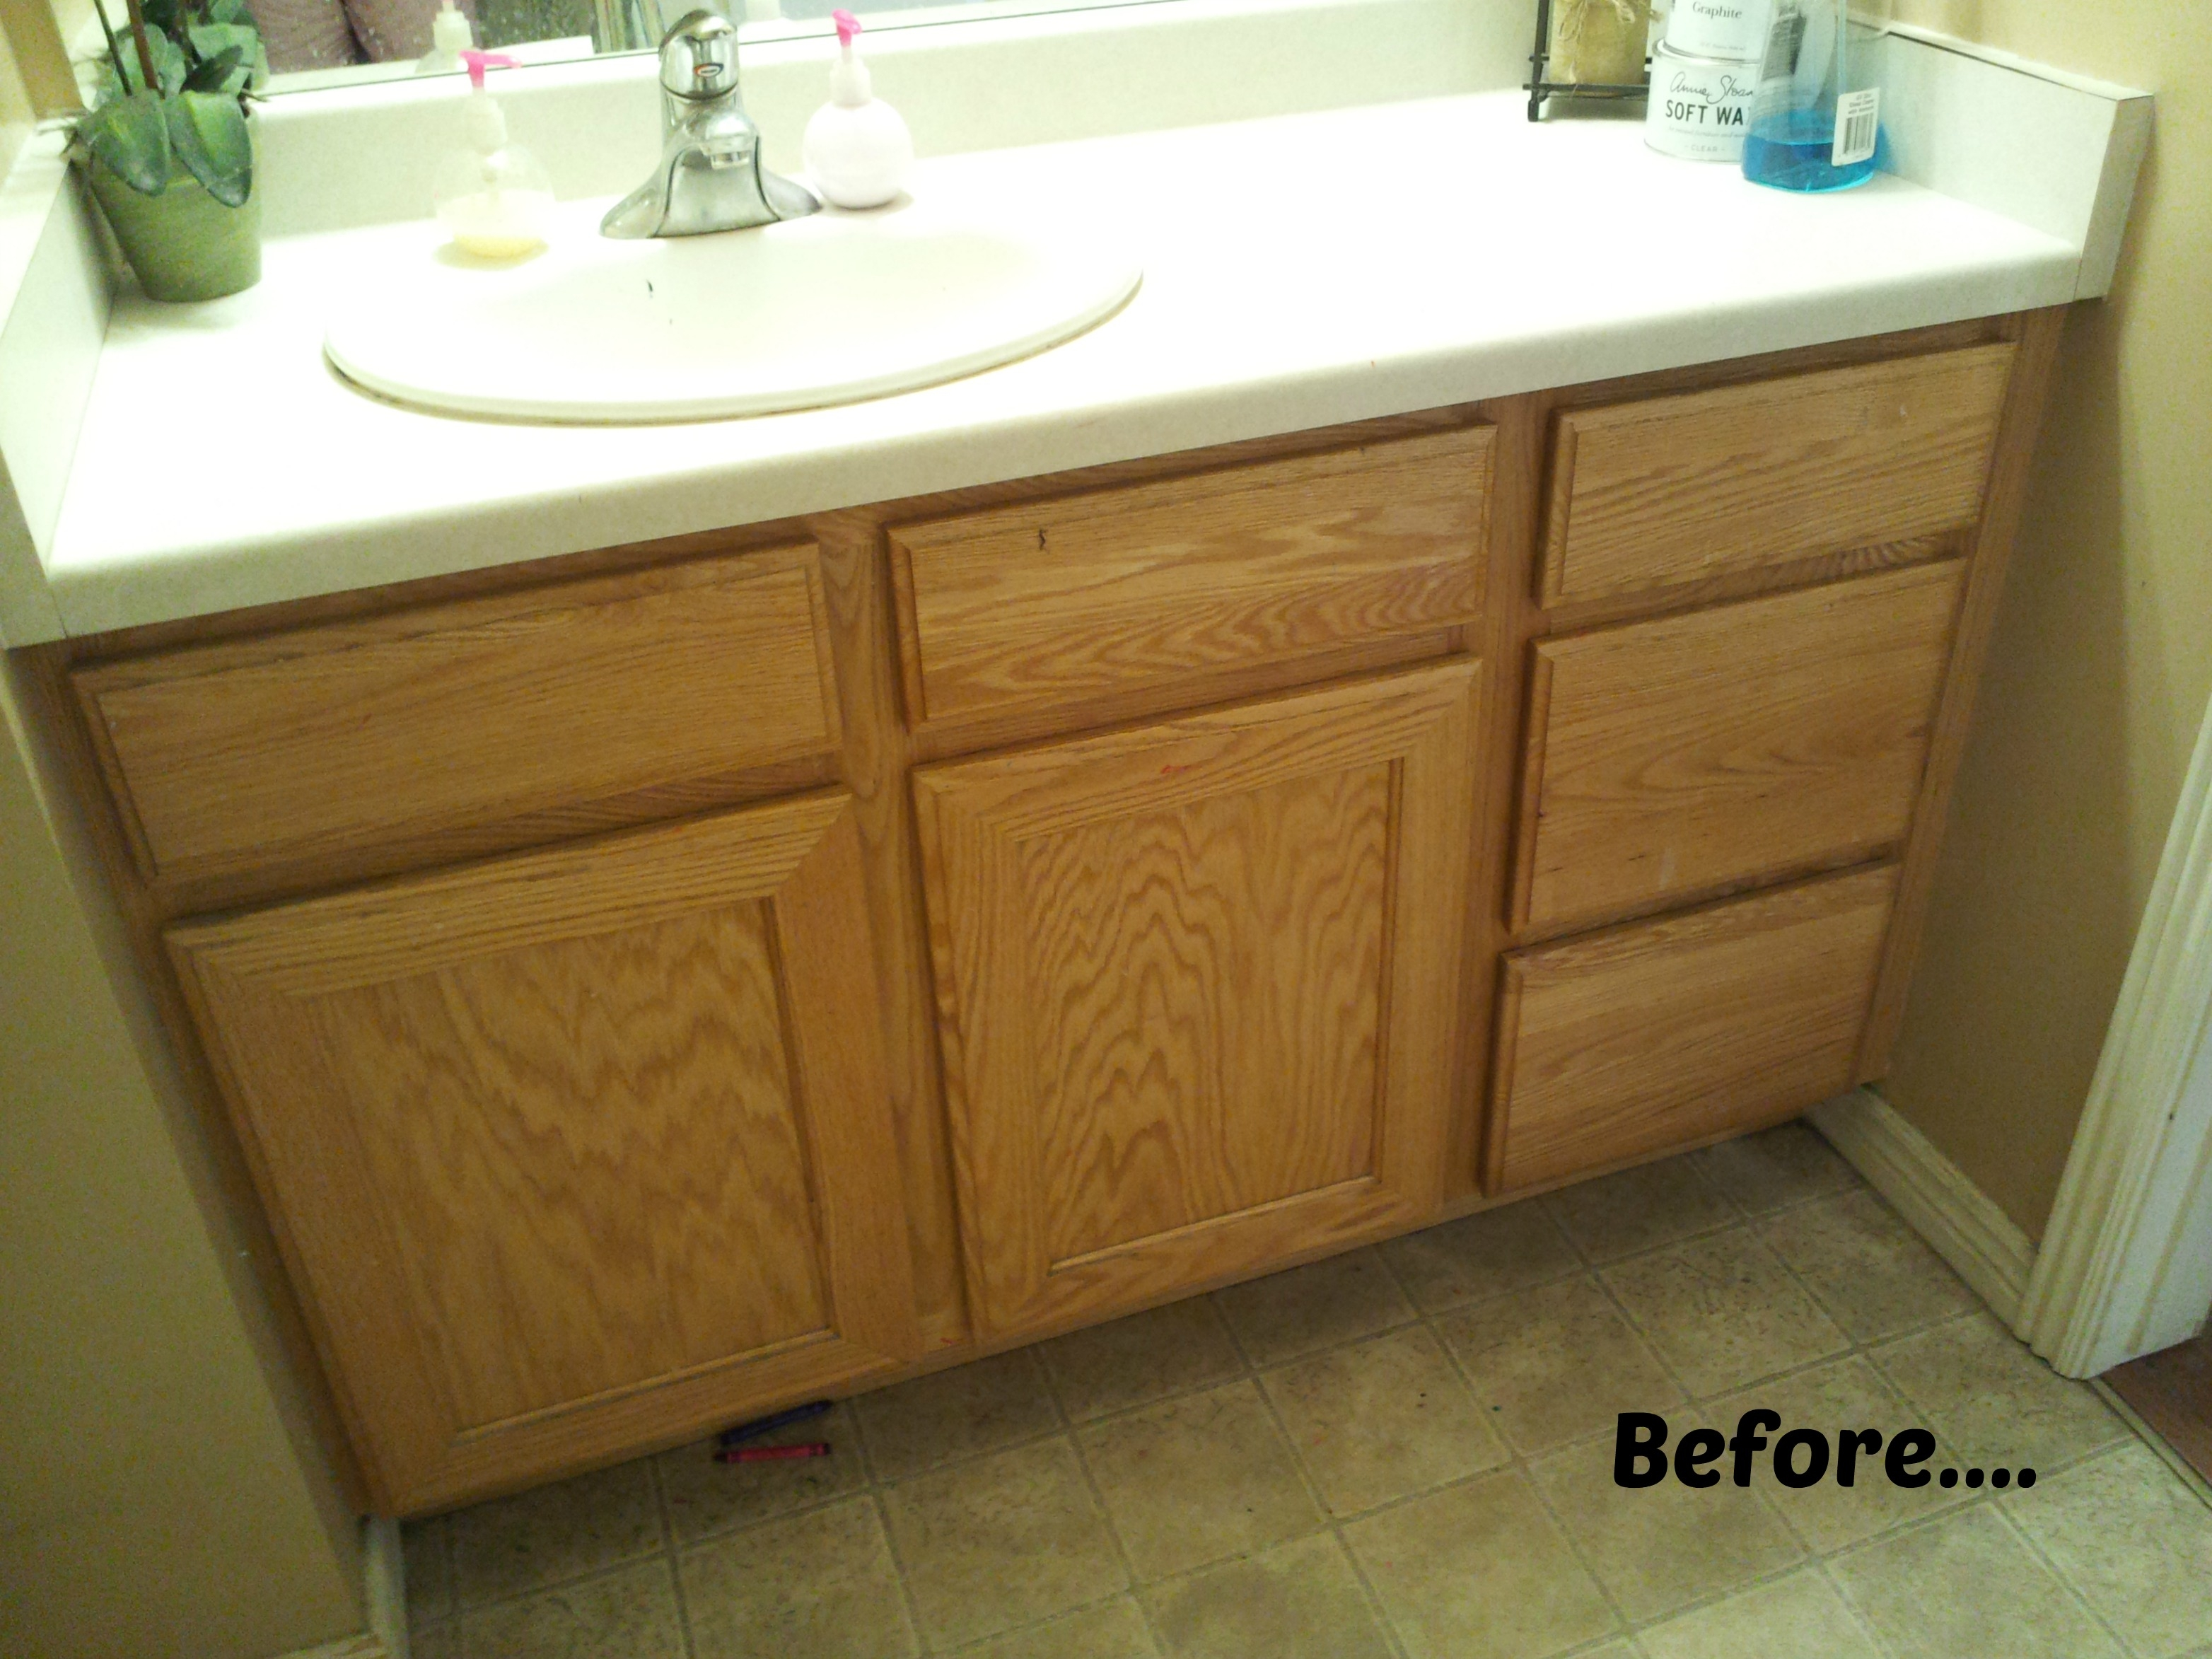 Redoing Bathroom Cabinetsredo bathroom cabinets asarent bathroom ideas